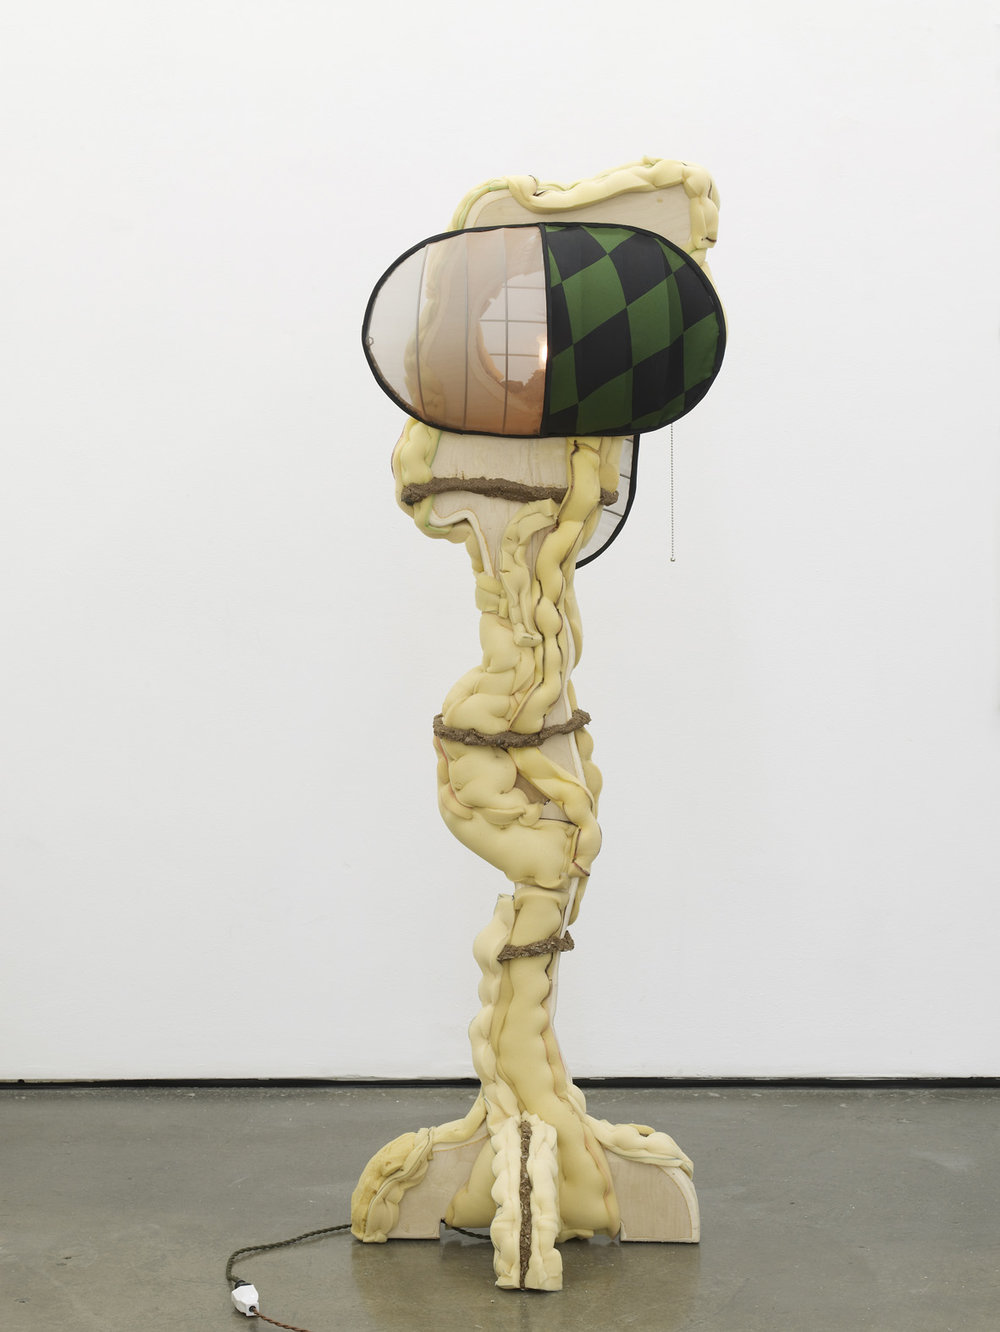 Stare Straight Ahead Standing Lamp 2015 Plywood, polyurethane foam, sawdust, steel, fabric, ink, lamp components 165.1 x 60.9 x 71.1 cm / 65 x 24 x 28 in